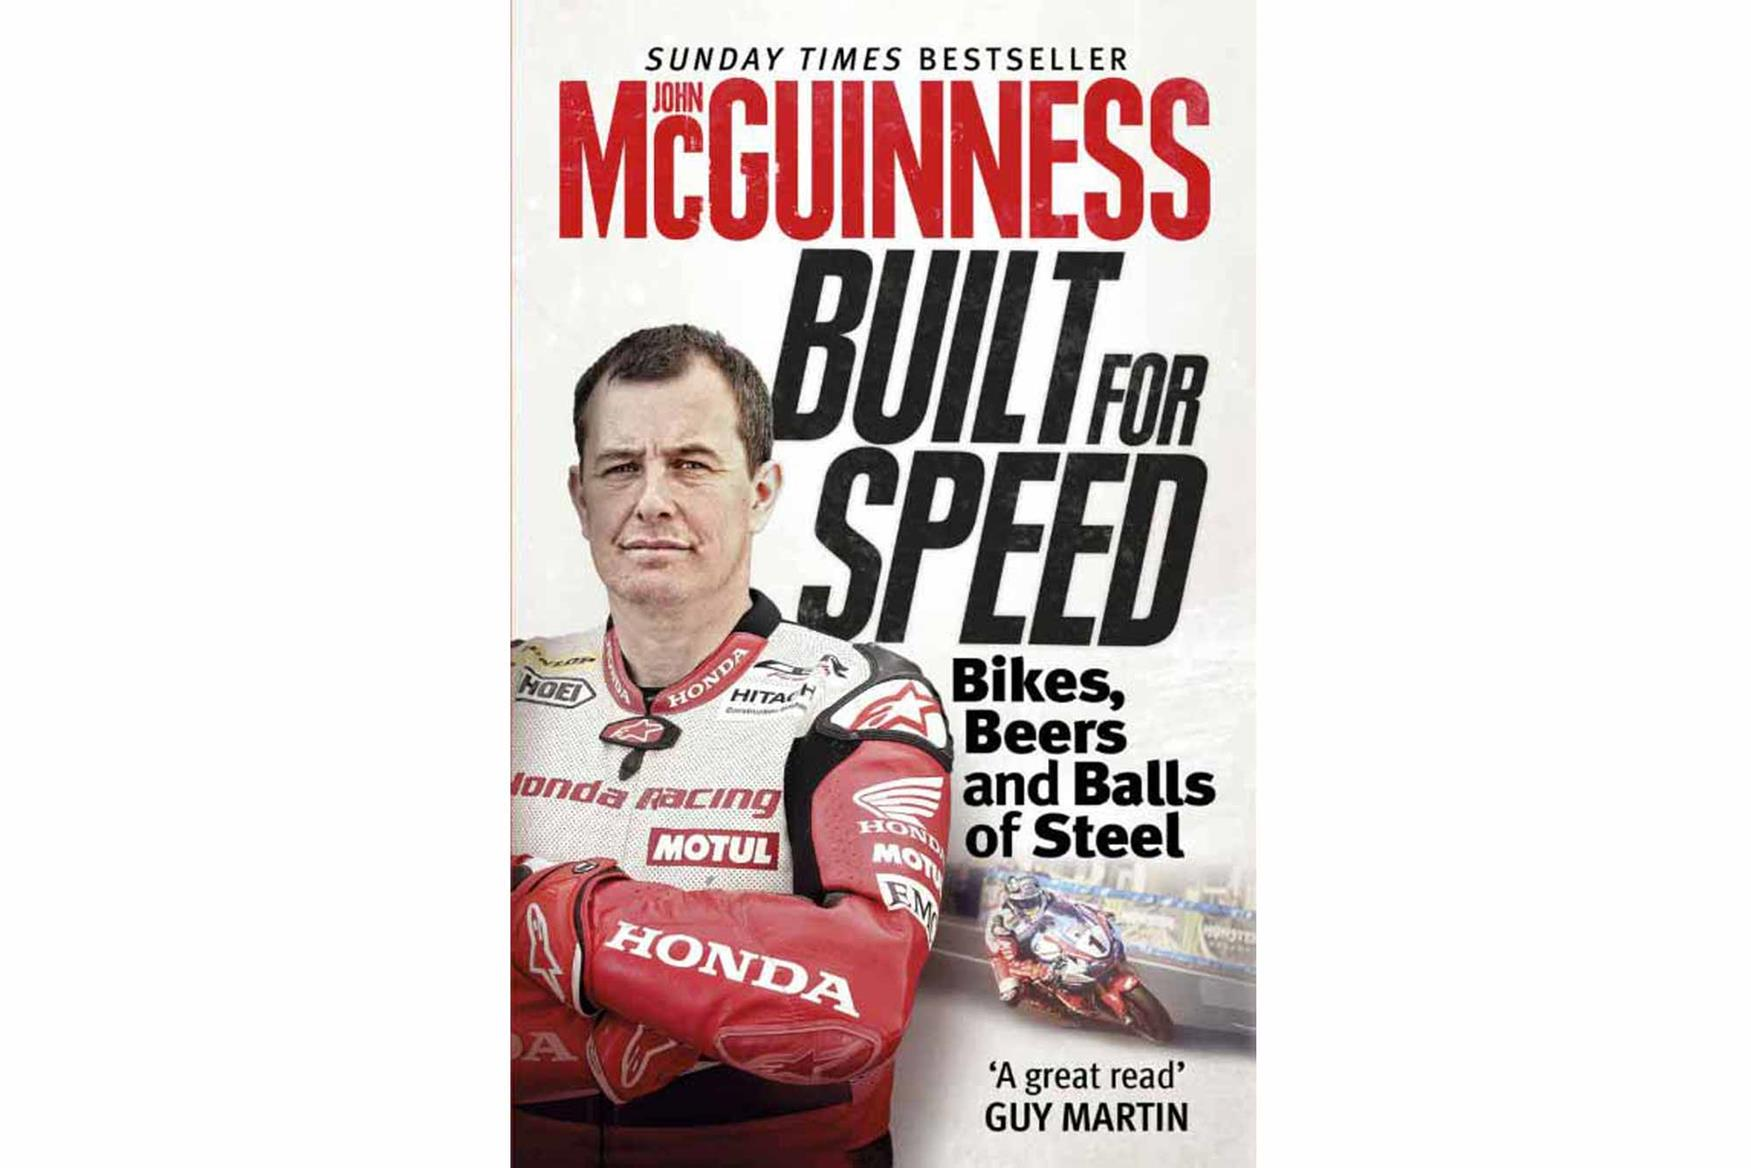 John McGuinness Built for Speed